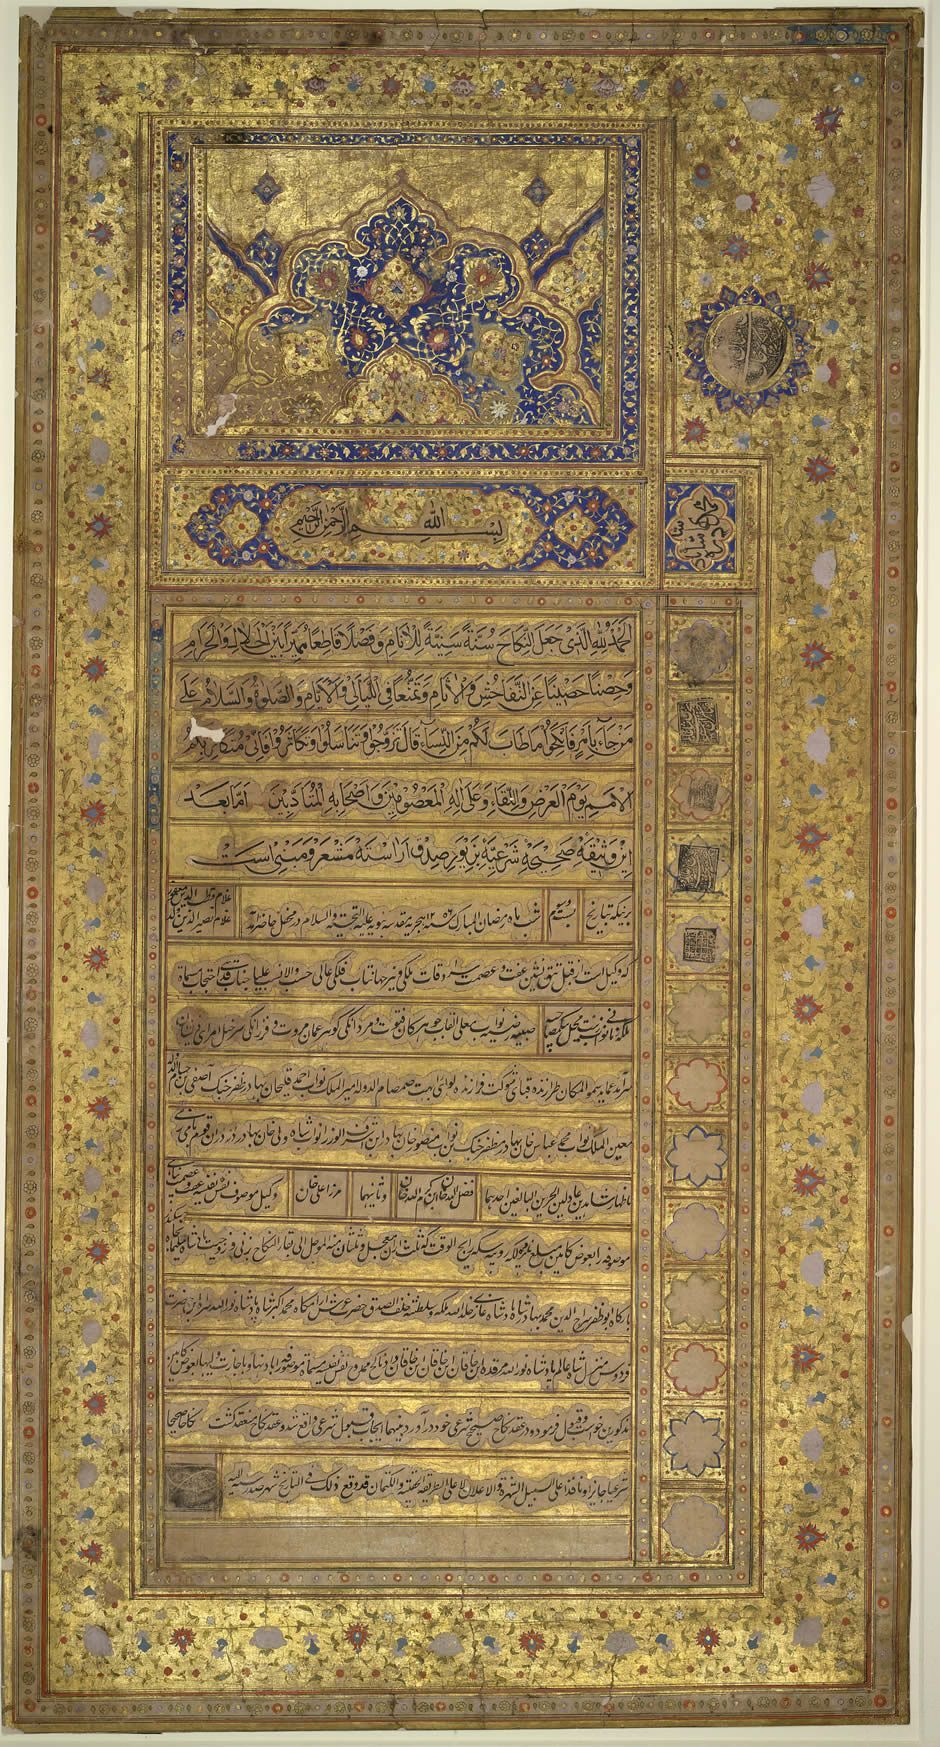 Holy crap this is fancy historical marriage contract for a king marriage certificate of the last mughal ruler bahadur shah ii r to zinat mahal begam on 18 november 1betcityfo Gallery